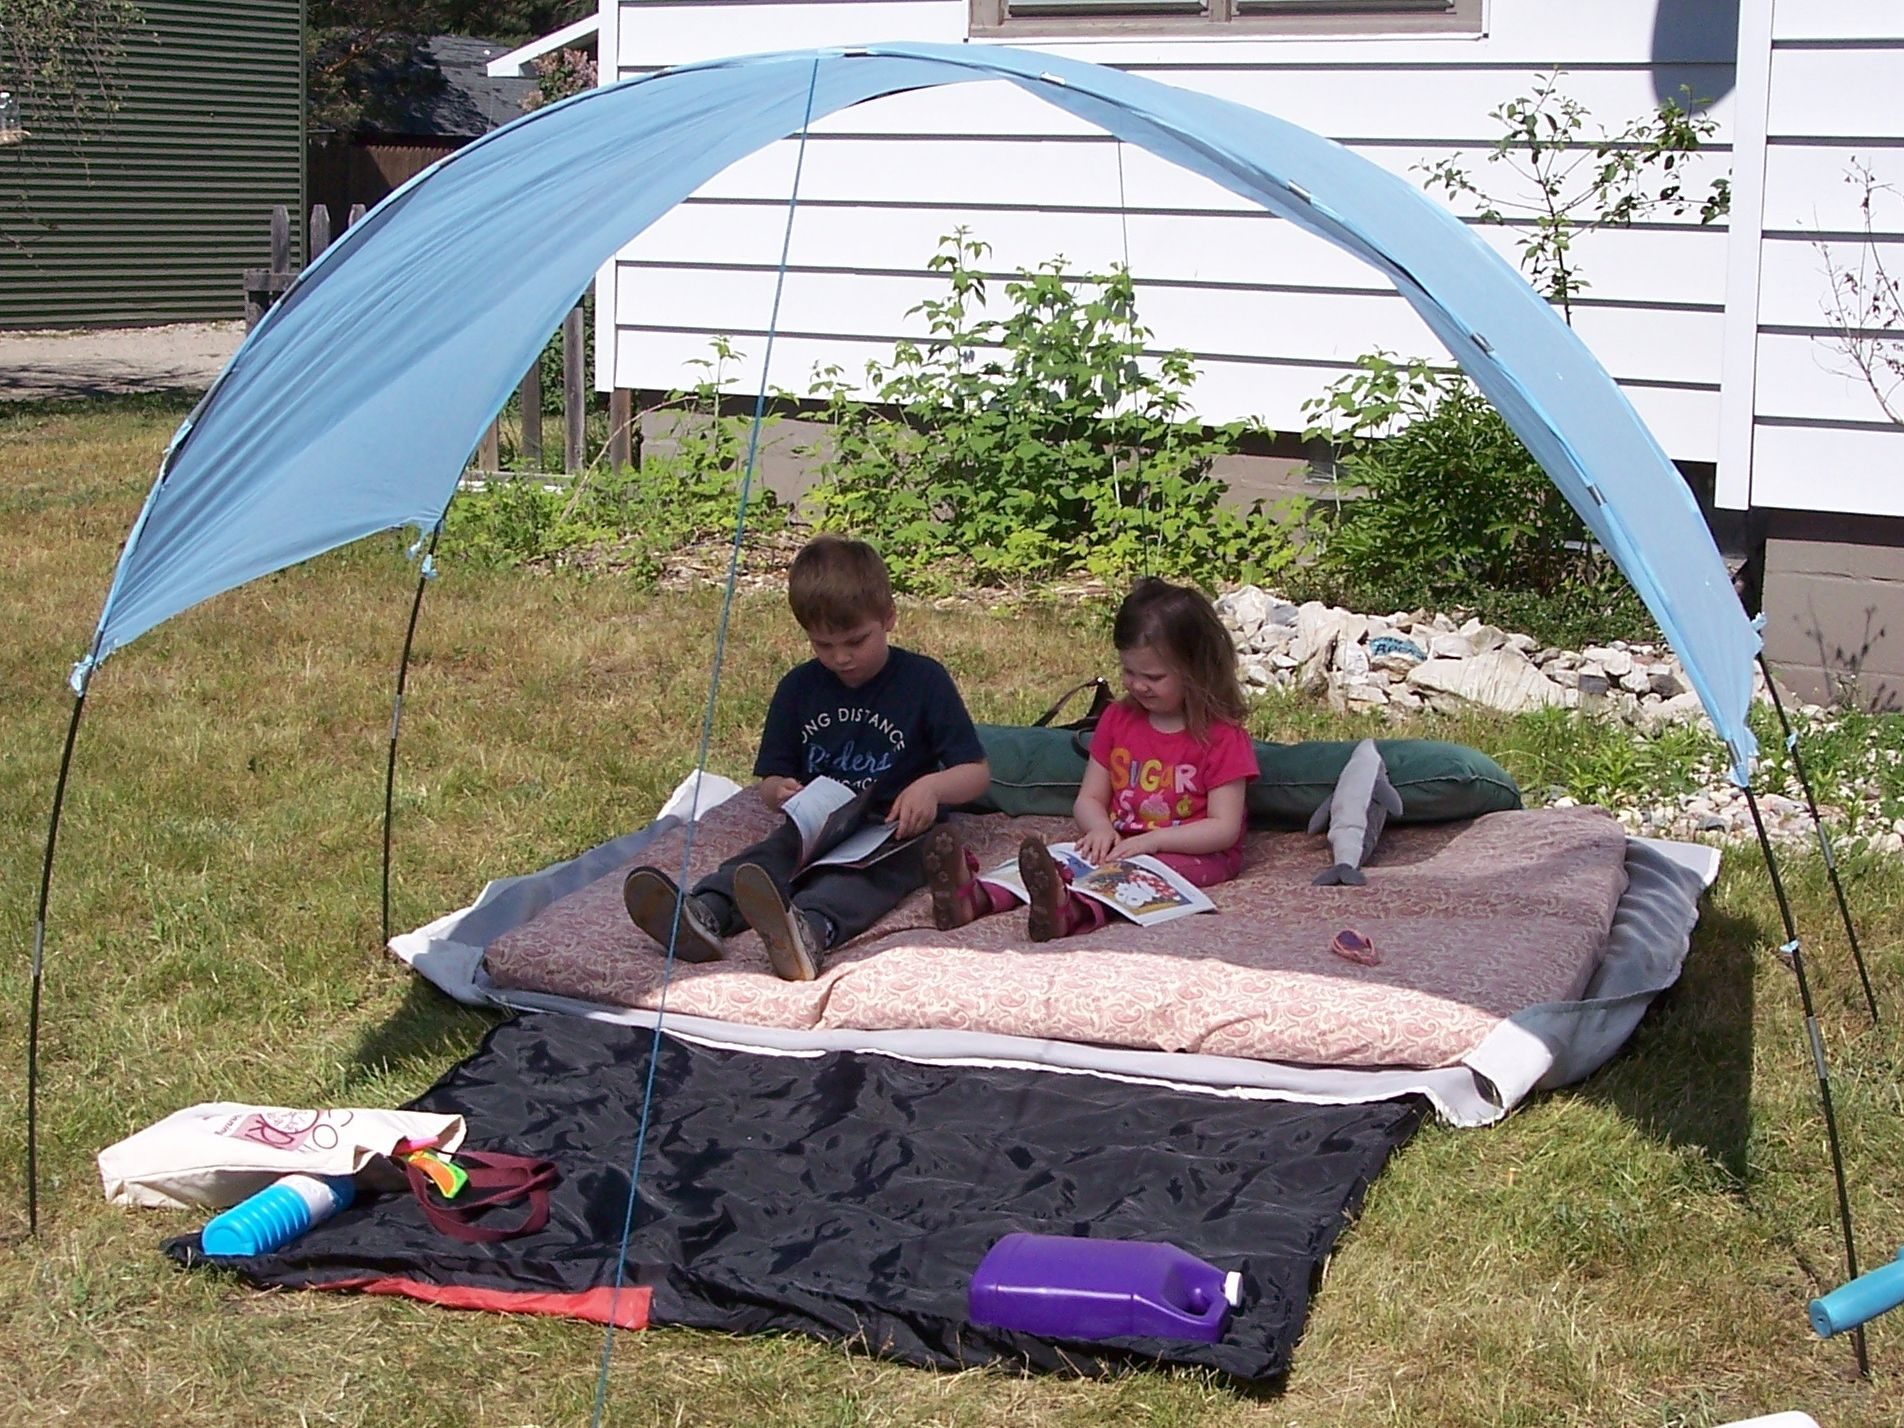 Diy Shade Tent For My Kids Dollar Table Cloth